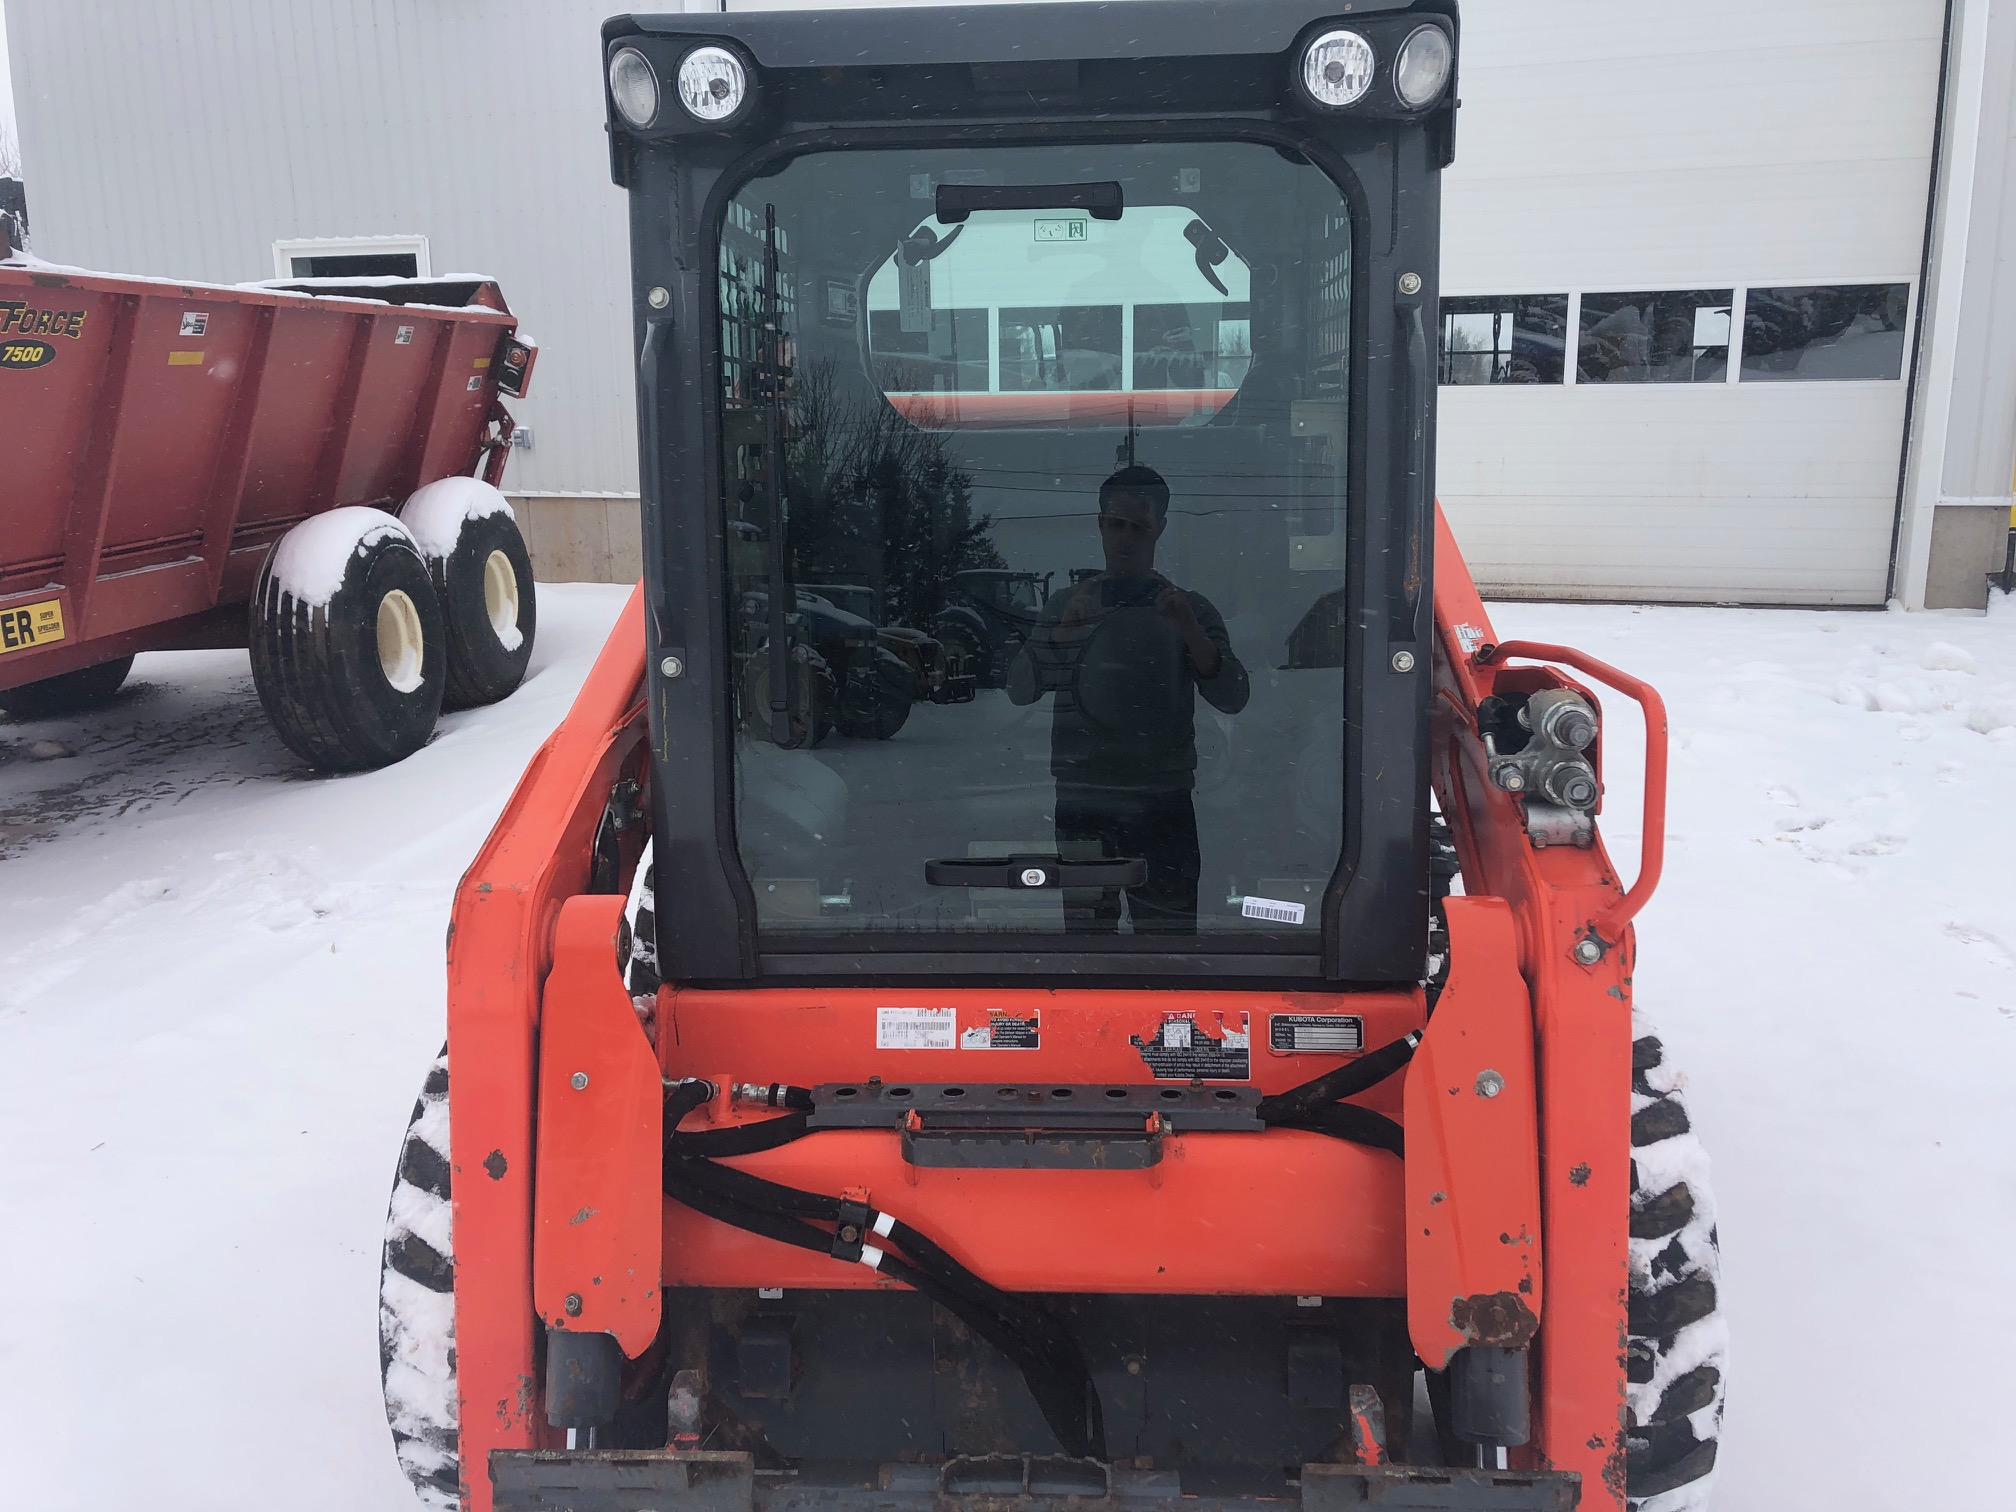 2017 Kubota SSV65 Skid Steer Loader for sale in Kensington, PE